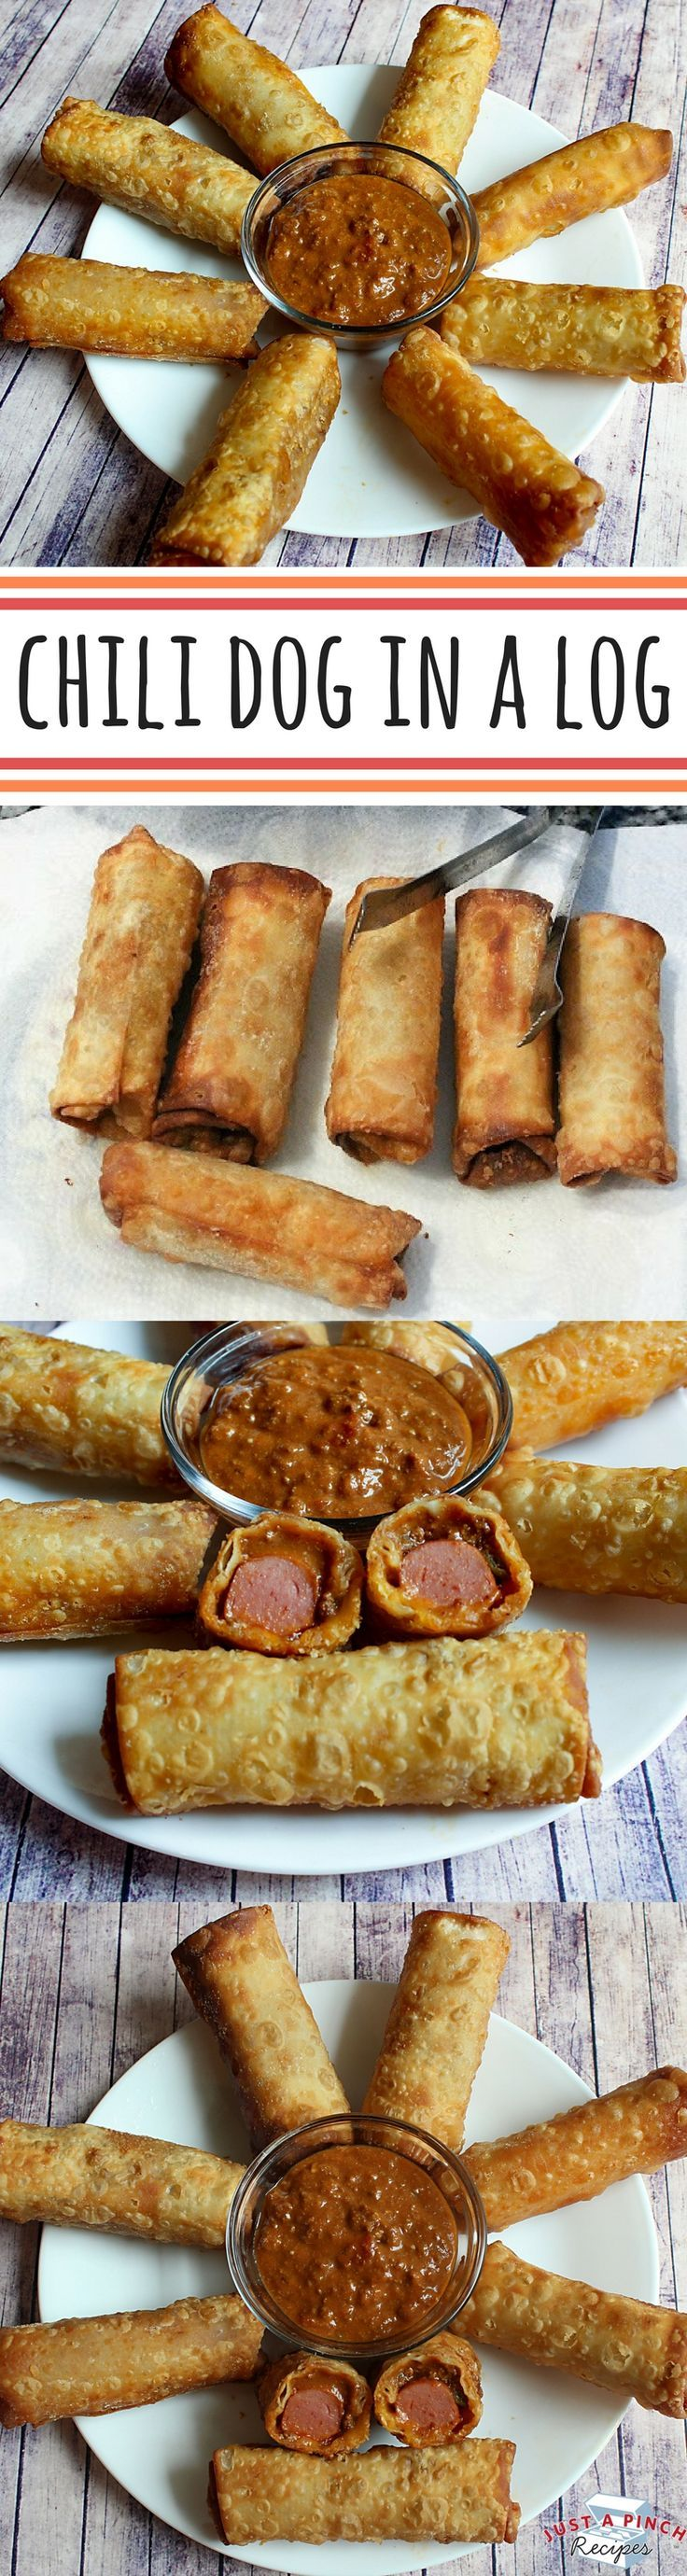 Imagine biting into a melted chili cheese dog fried in a crunchy egg roll wrapper and you have this tasty snack. Fry these up for the big game, sit down and watch them disappear. We suggest serving with extra chili and a bit of mustard for dipping. These are awesome!